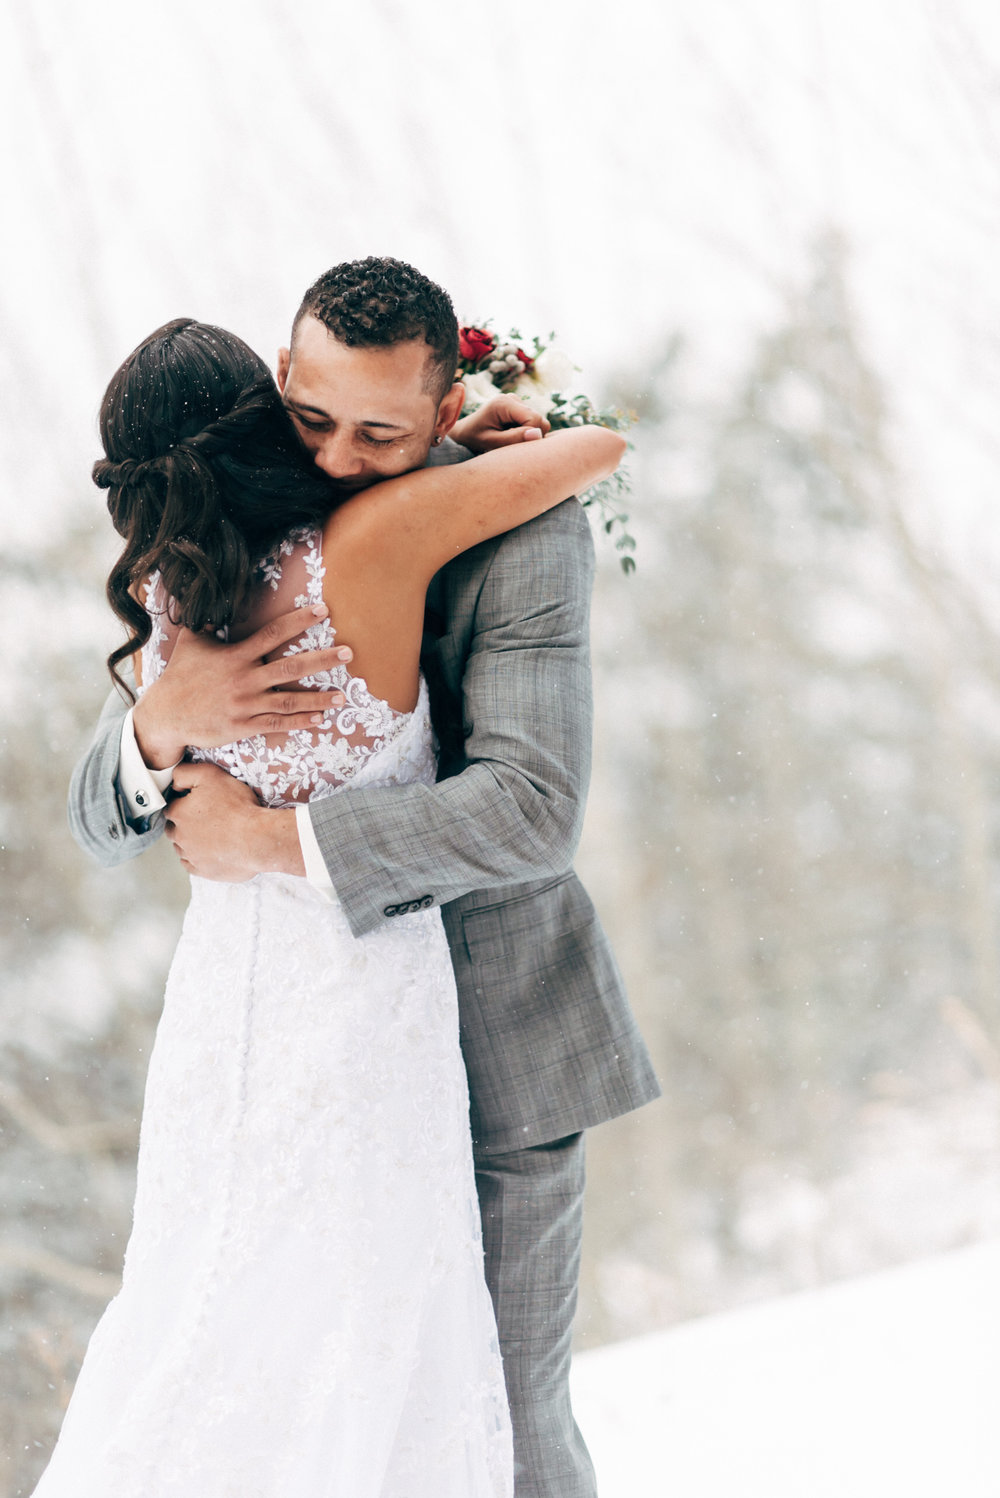 Love on the Mountain in Breckenridge, Colorado wedding. Colorado wedding photographer.